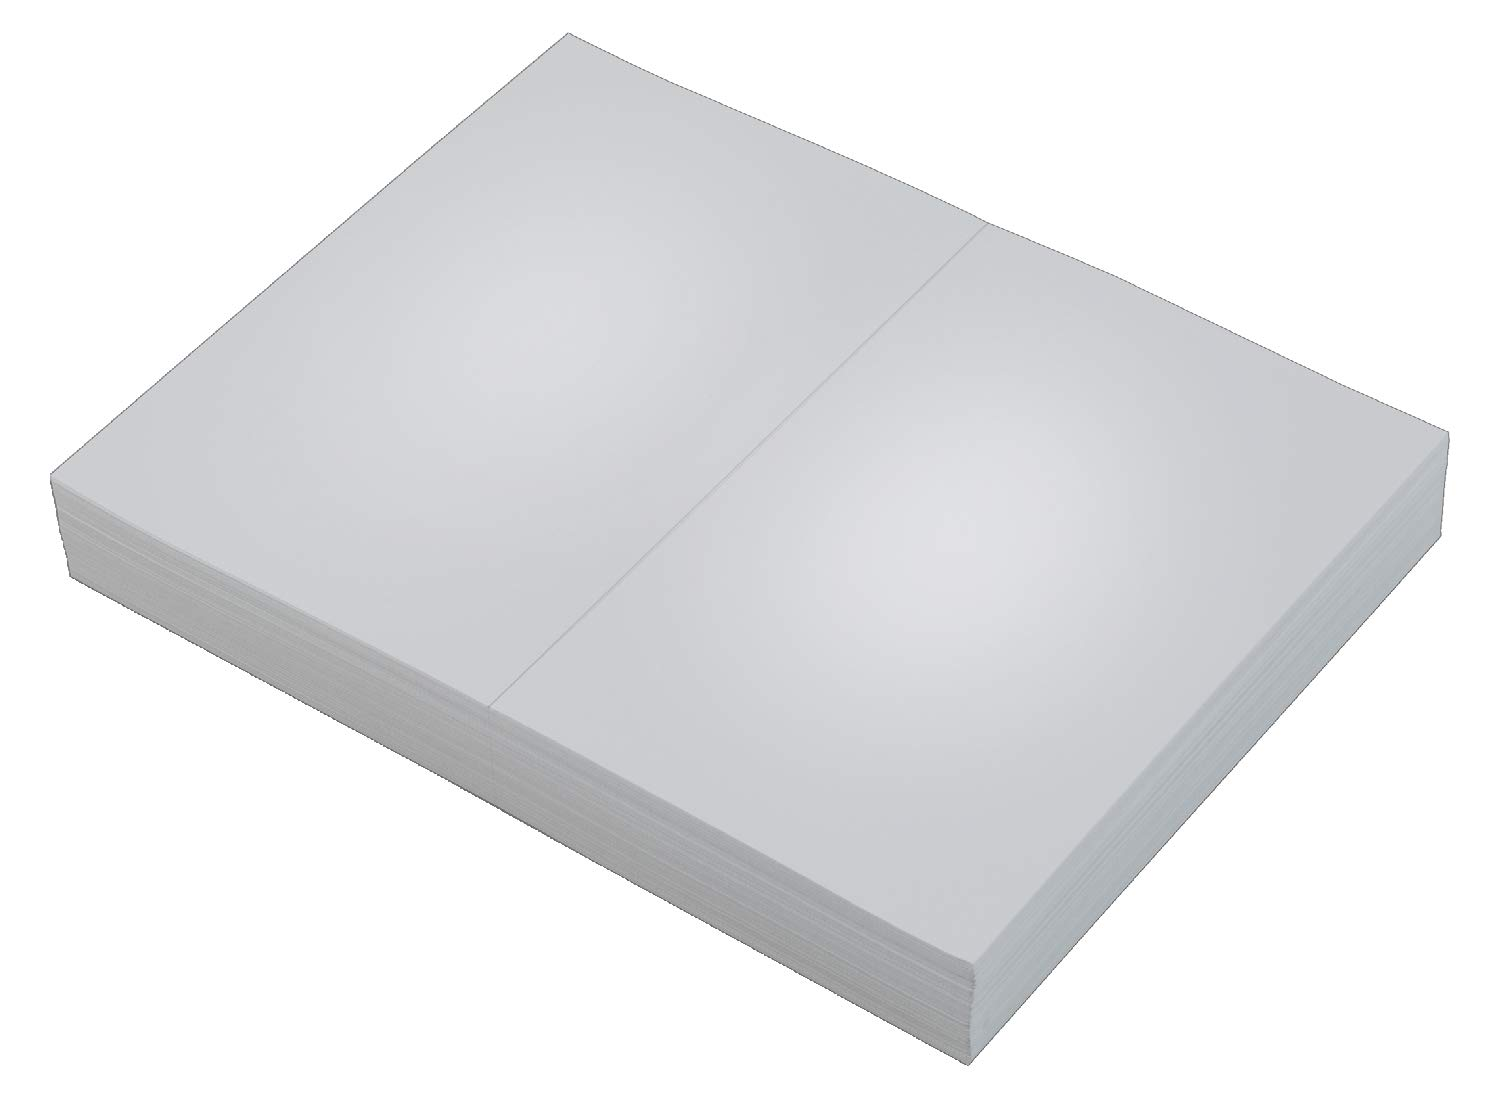 TOPS Laser Cut Sheet Paper, Perforated 5-1/2 Inches from Bottom, 20 Pound, 8.5 x 11 Inches, 500 Sheets, White (05020)